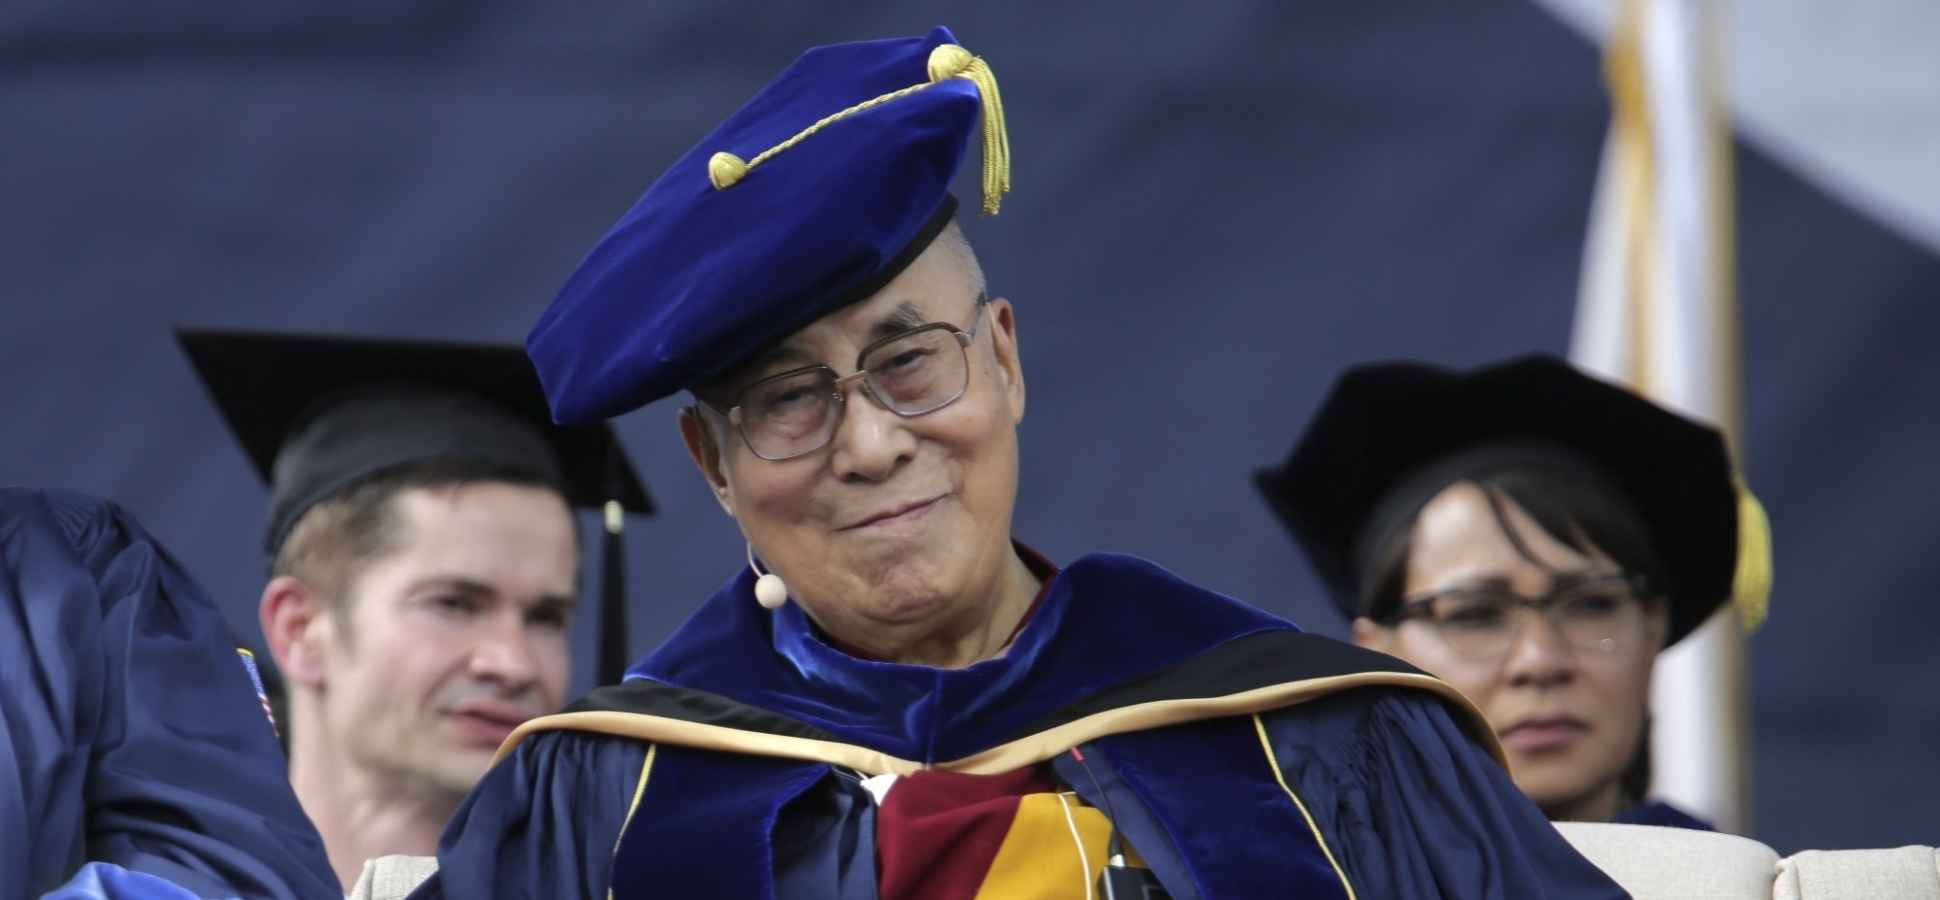 Dalai Lama to Grads: It's Time to Promote Deeper Human Values